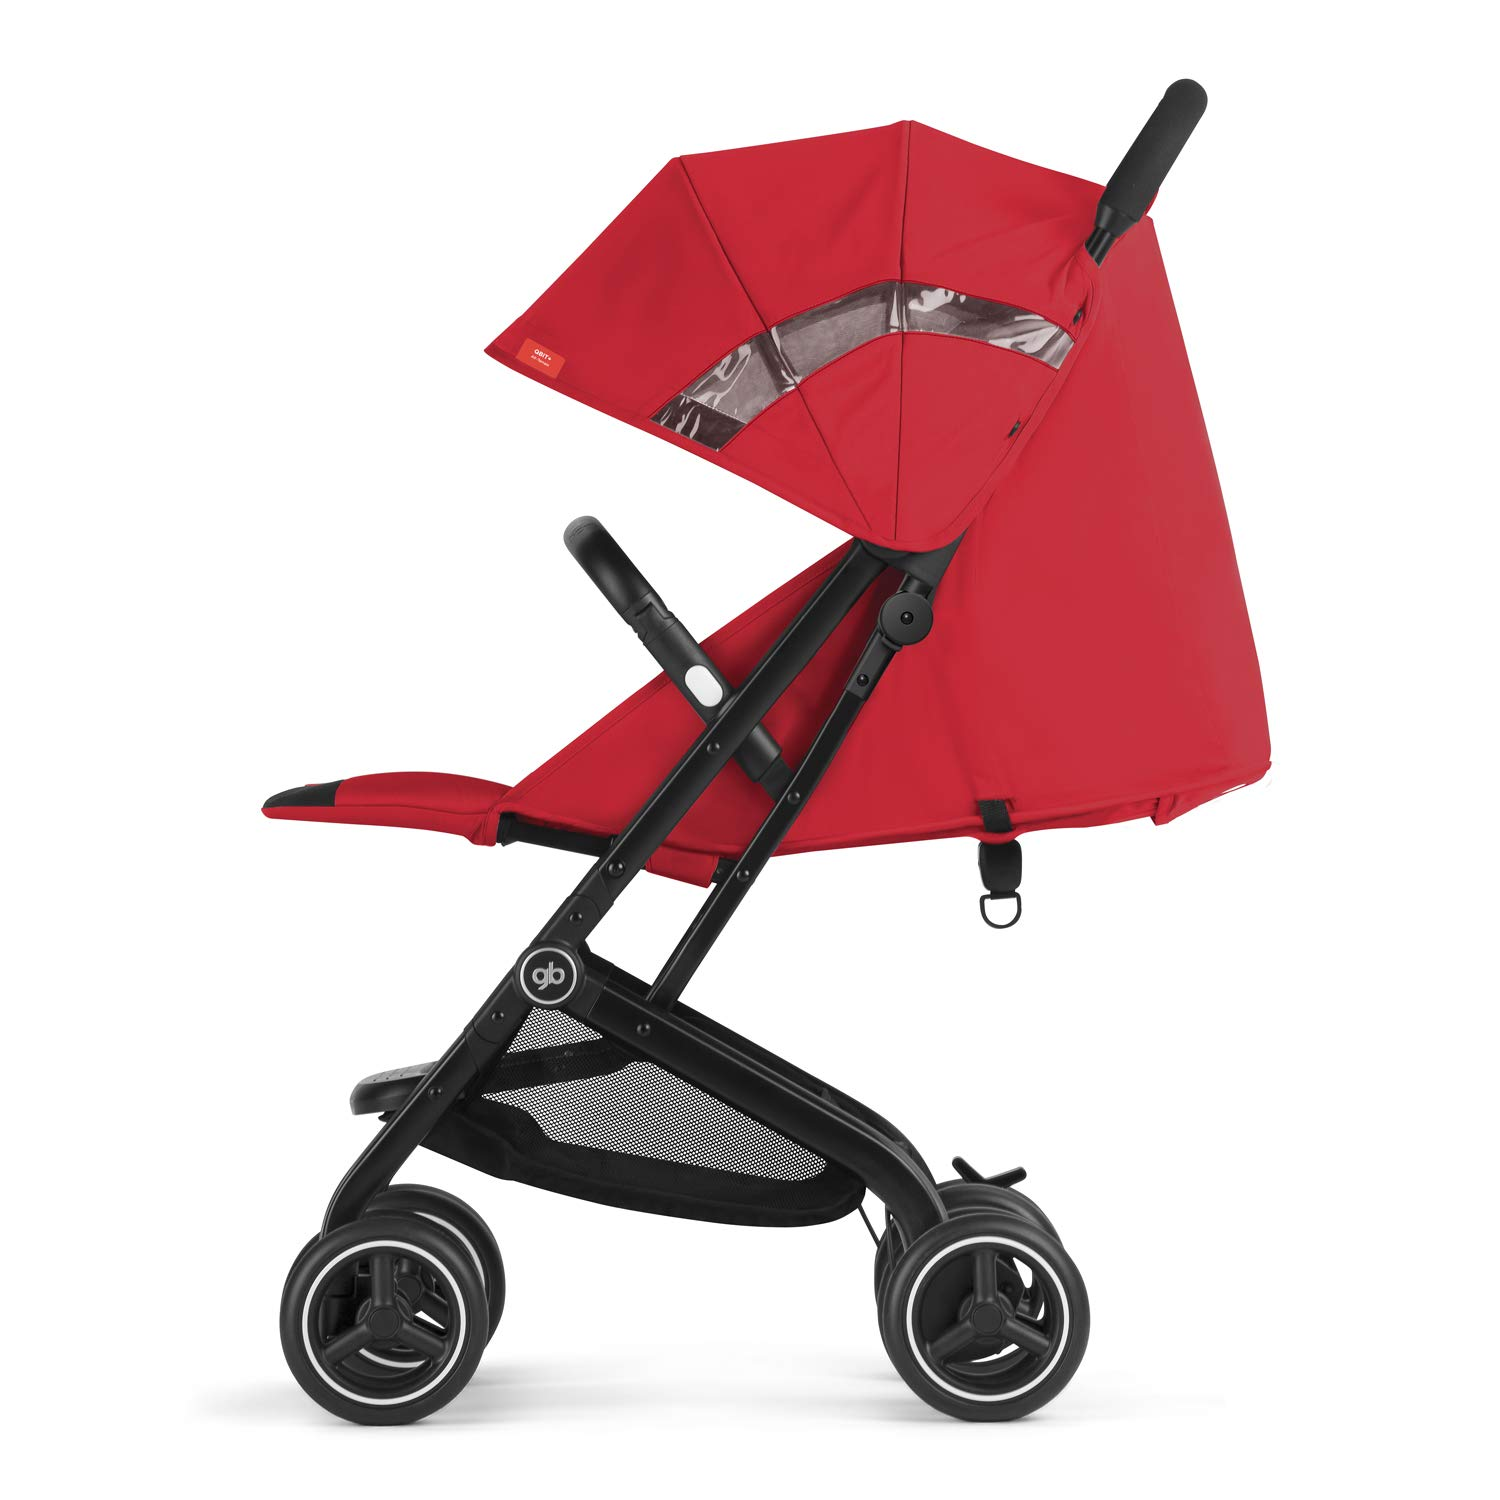 gb 2019 Buggy QBIT+ All-Terrain with Bumper Bar''Night Blue''- from Birth up to 17 kg (Approx. 4 Years) - GoodBaby QBIT Plus by gb (Image #5)